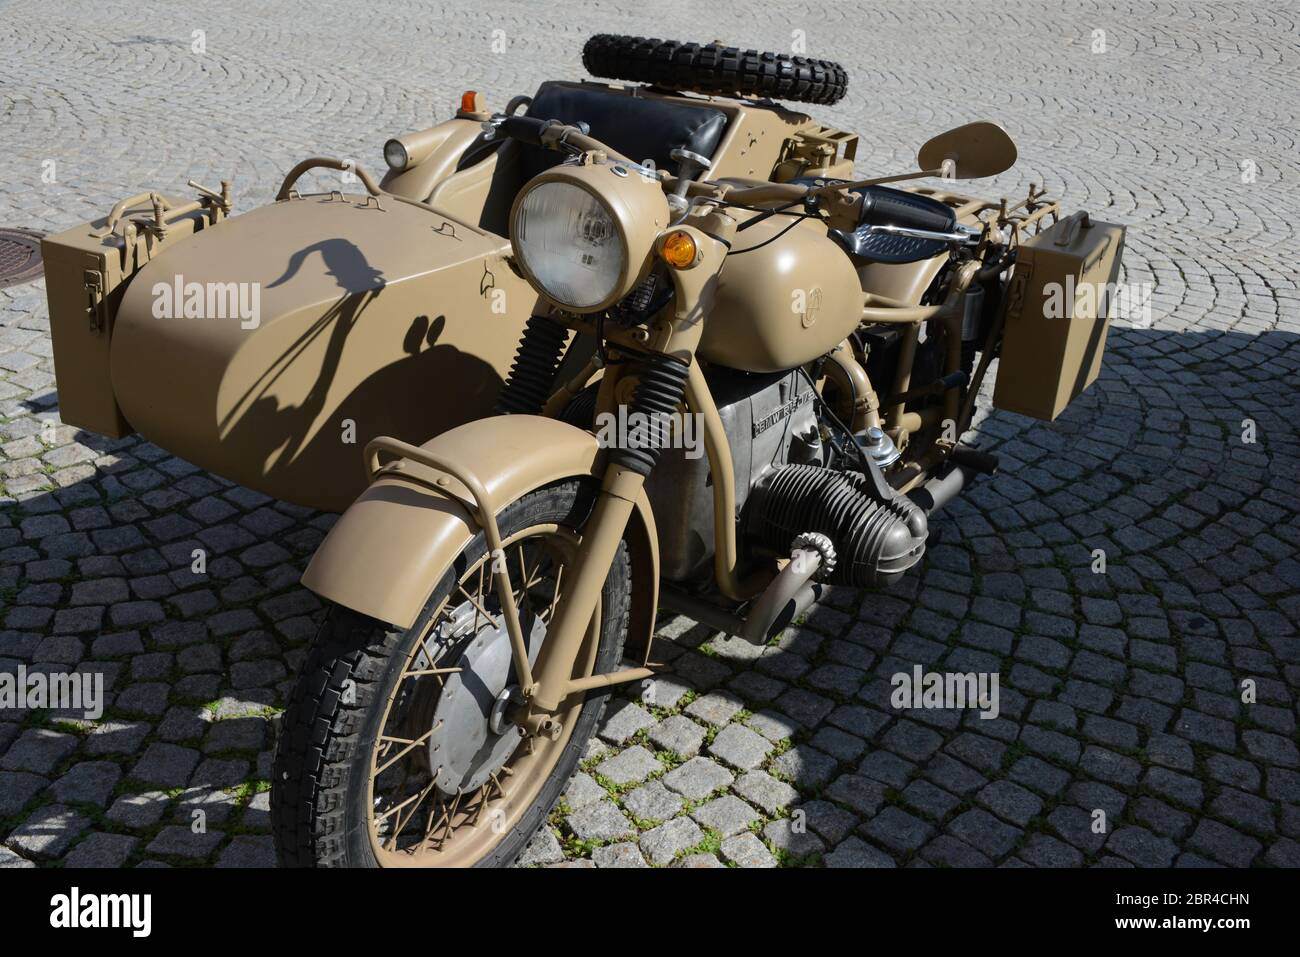 Old Bmw Bike High Resolution Stock Photography And Images Alamy